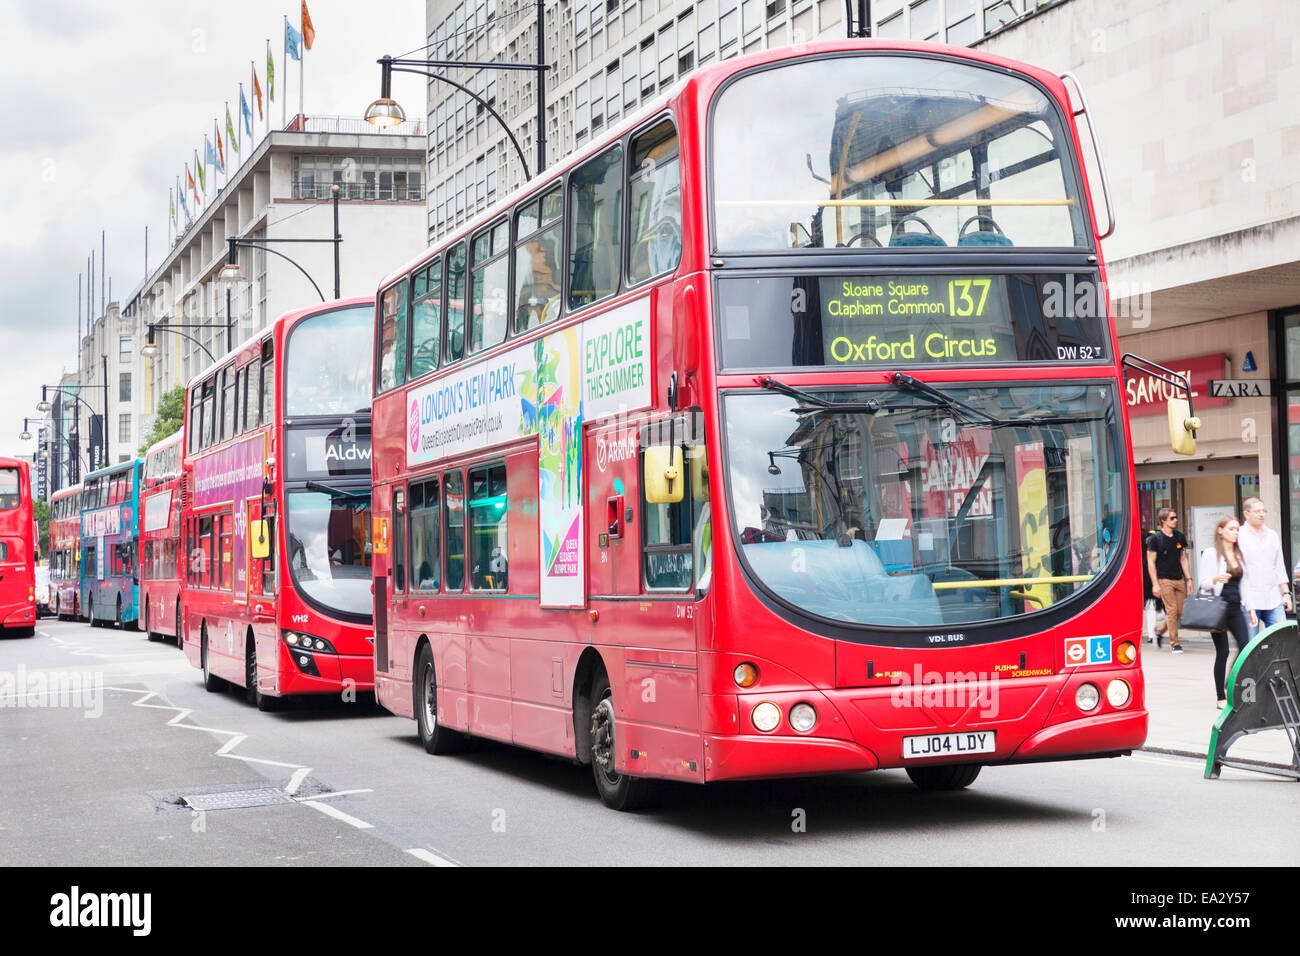 Red double decker bus on Oxford Street, London, England, United Kingdom, Europe - Stock Image